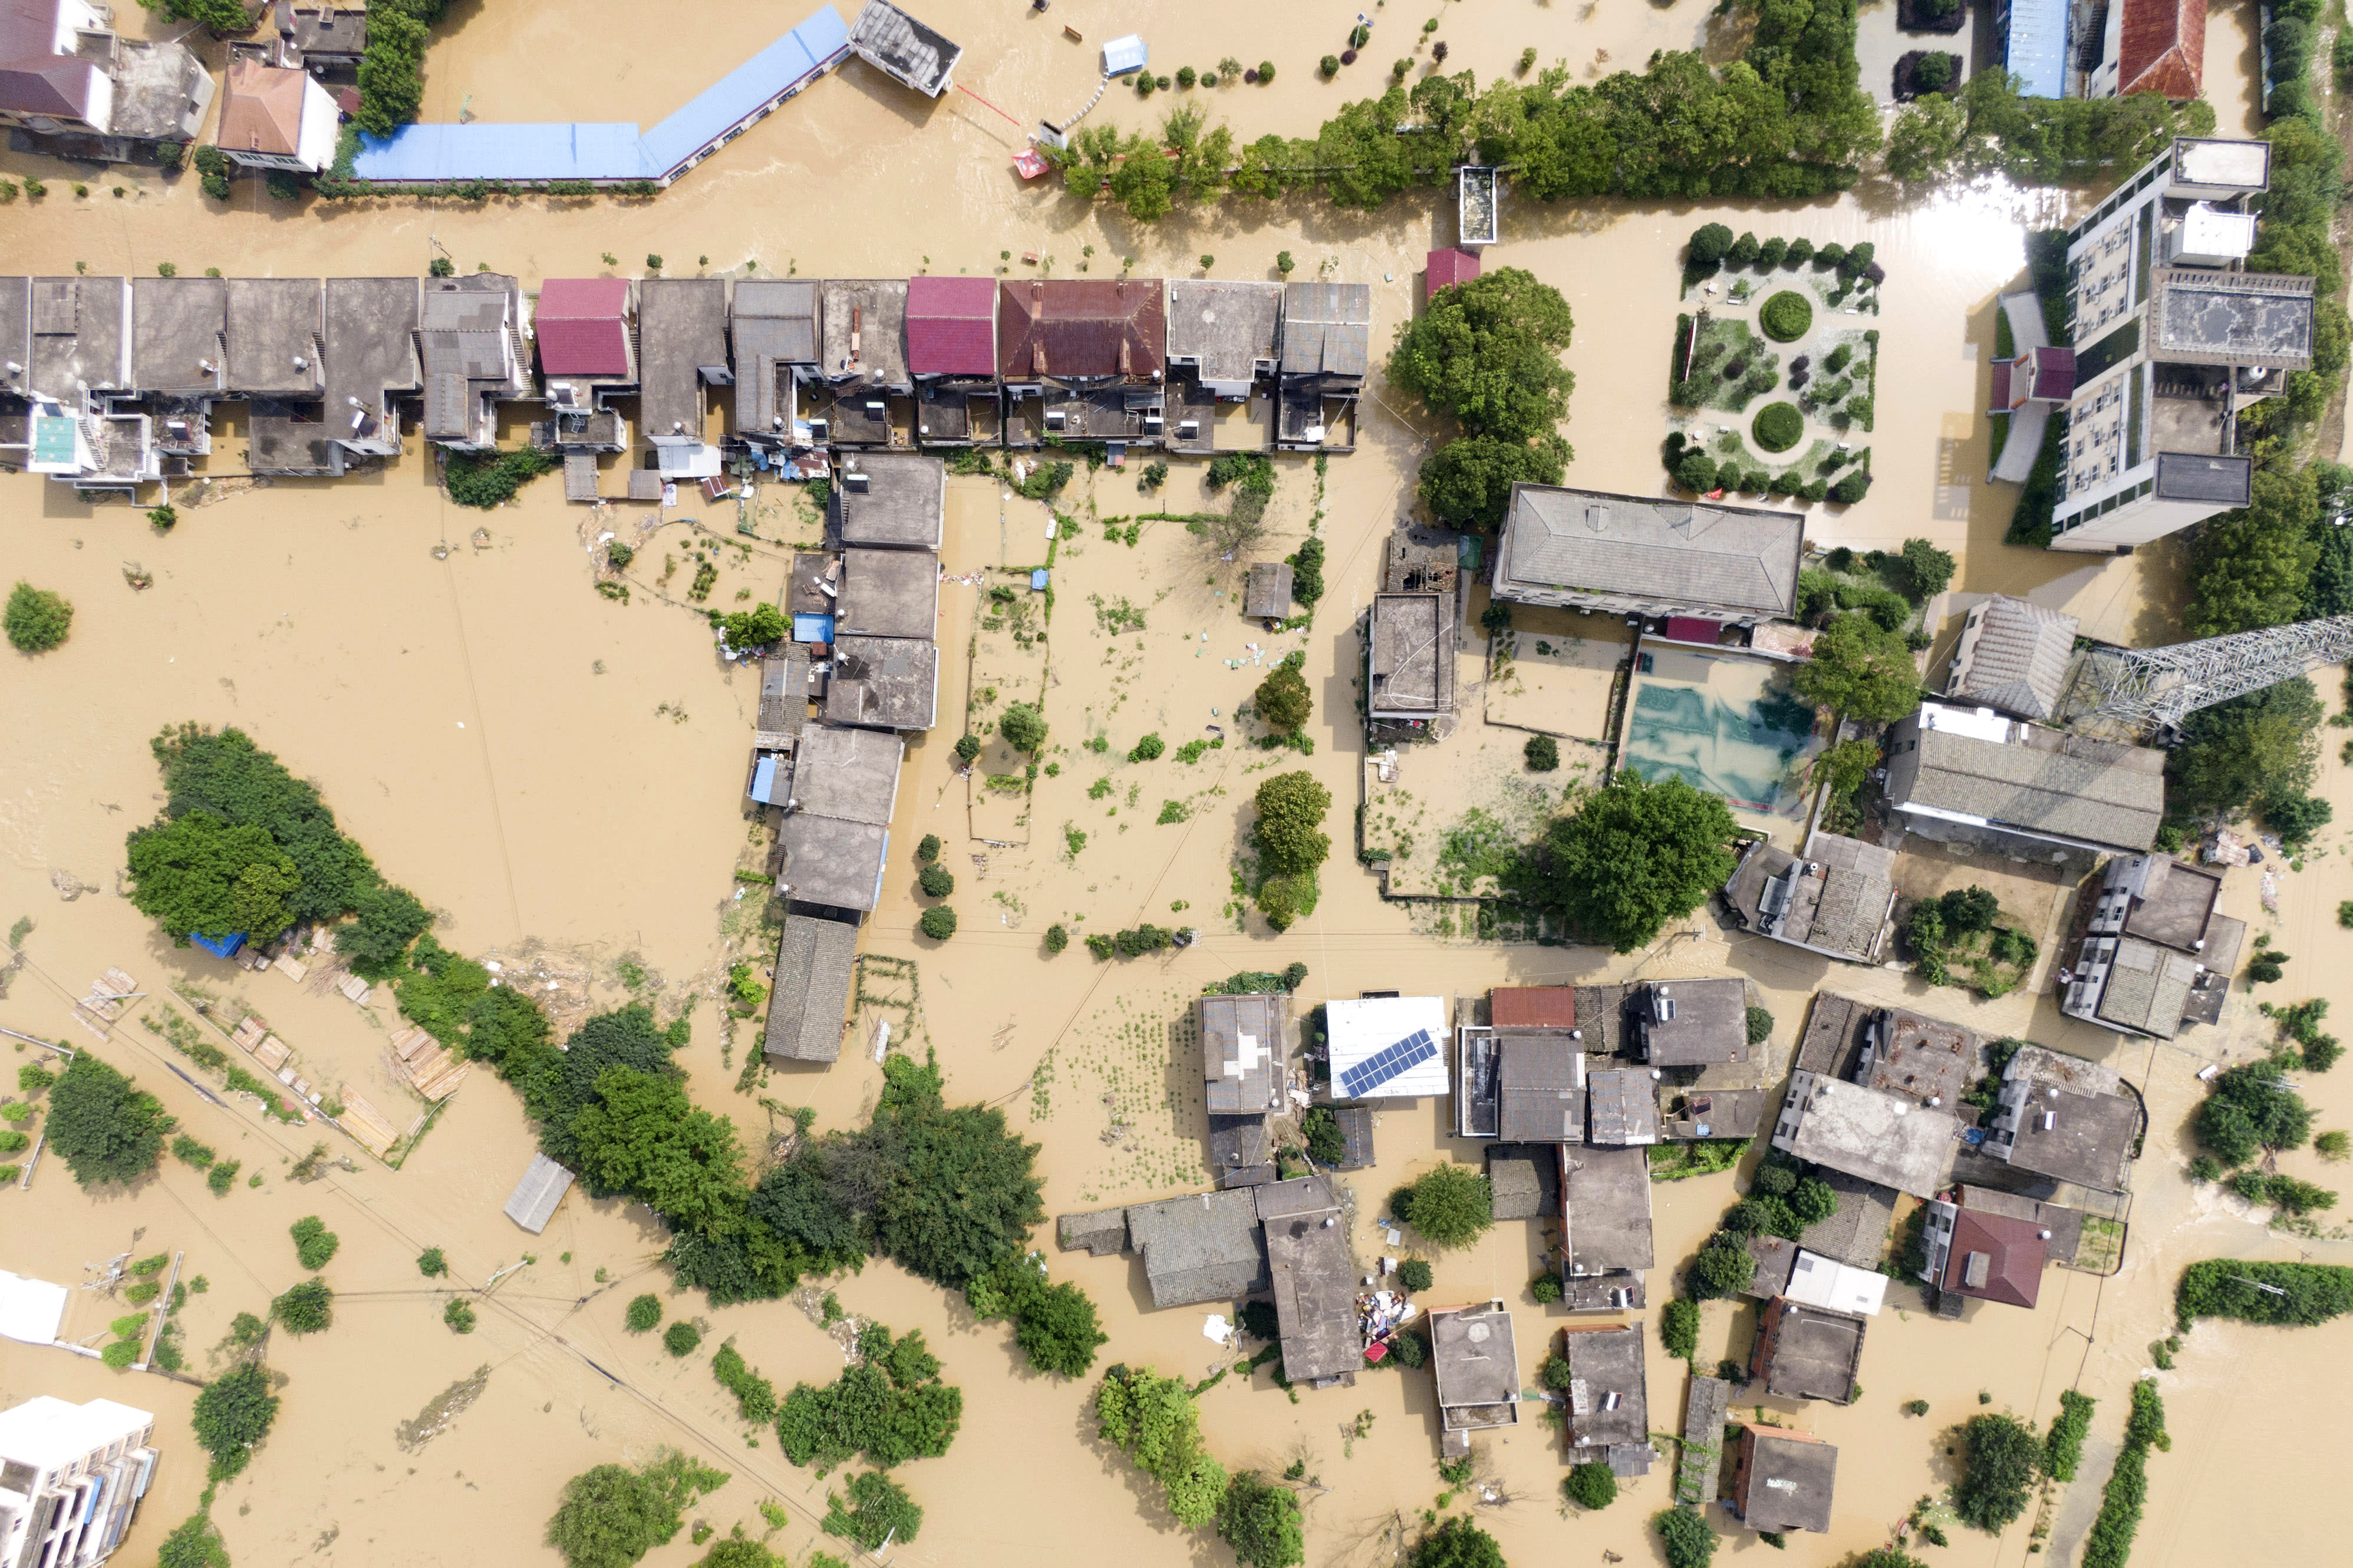 In this aerial photo released by Xinhua News Agency, a village is flooded in Sanjiao Township of the Yongxiu County in eastern China's Jiangxi Province Monday, July 13, 2020. Chinese authorities forecasted heavy rain across a wide swath of the country prompting evacuation of residents and raising emergency alerts levels. (Zhang Haobo/Xinhua via AP)